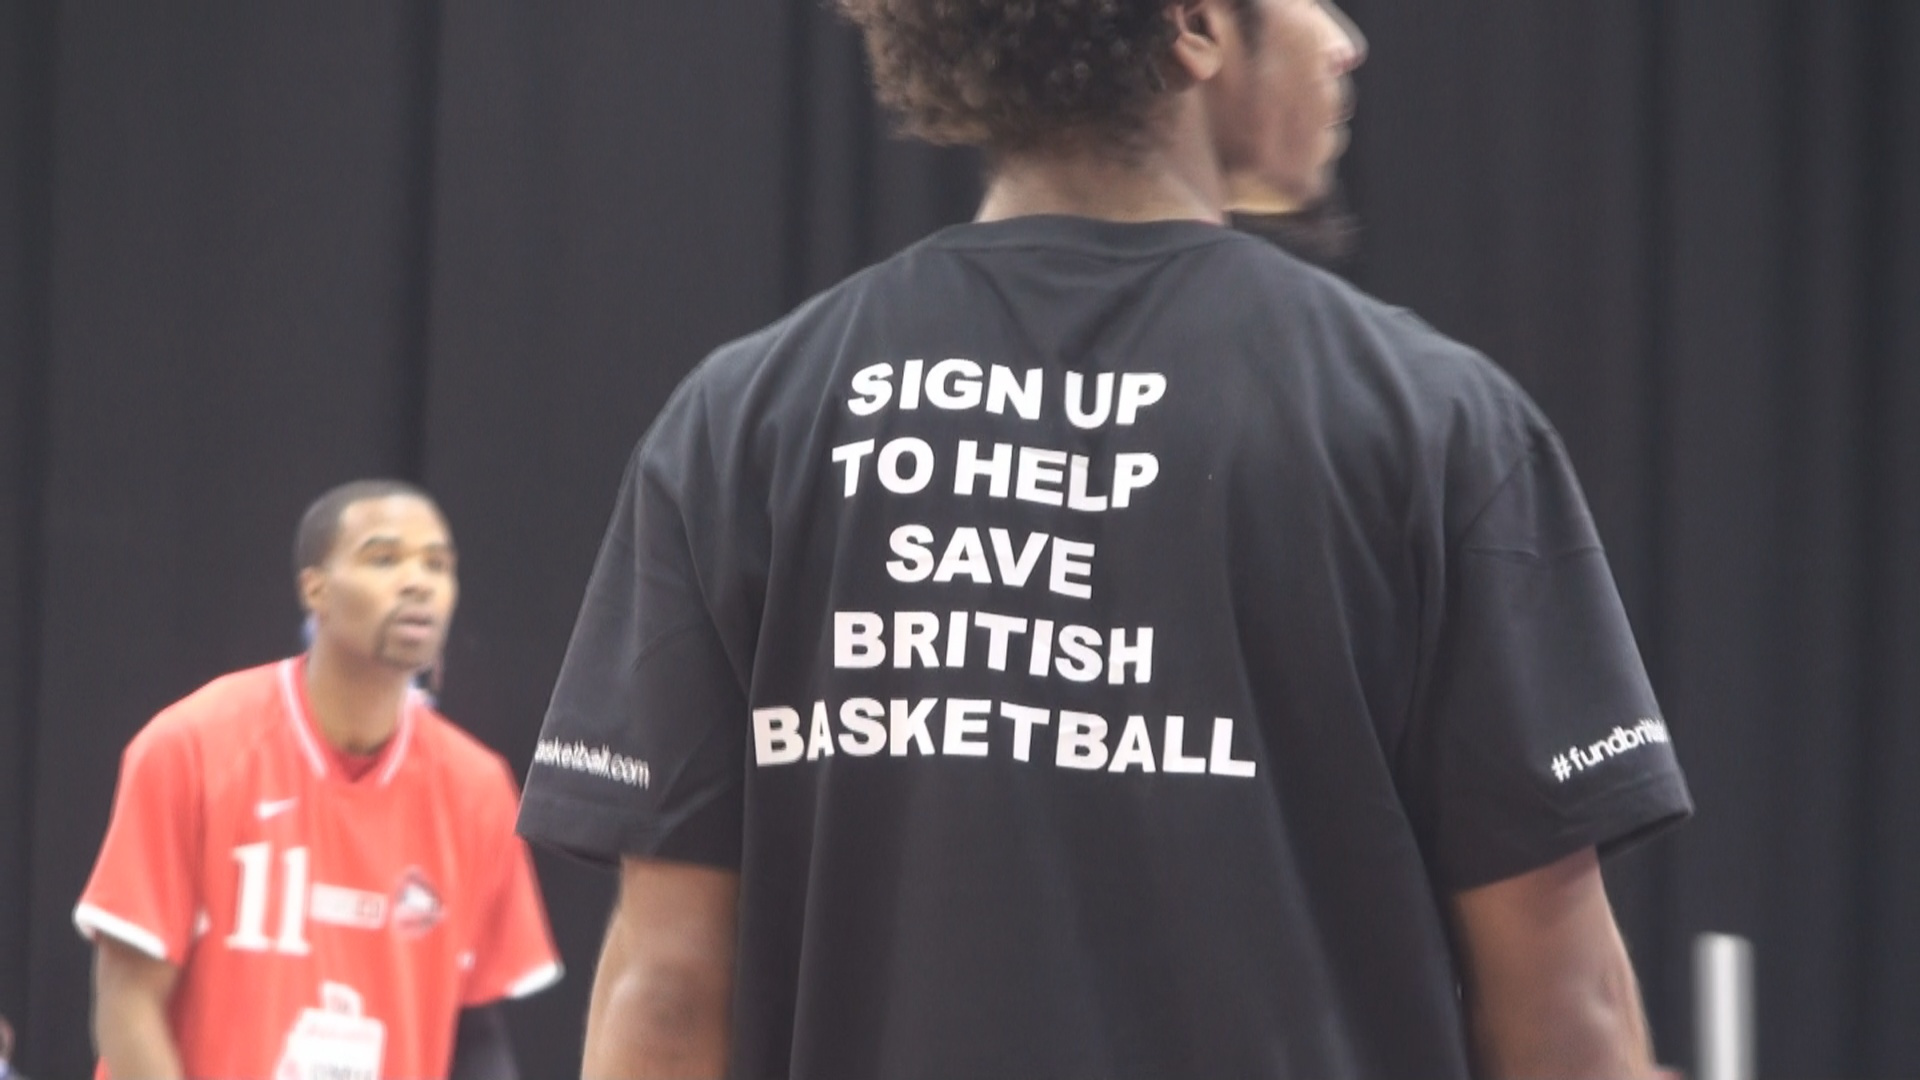 Fund British Basketball Connor Washington